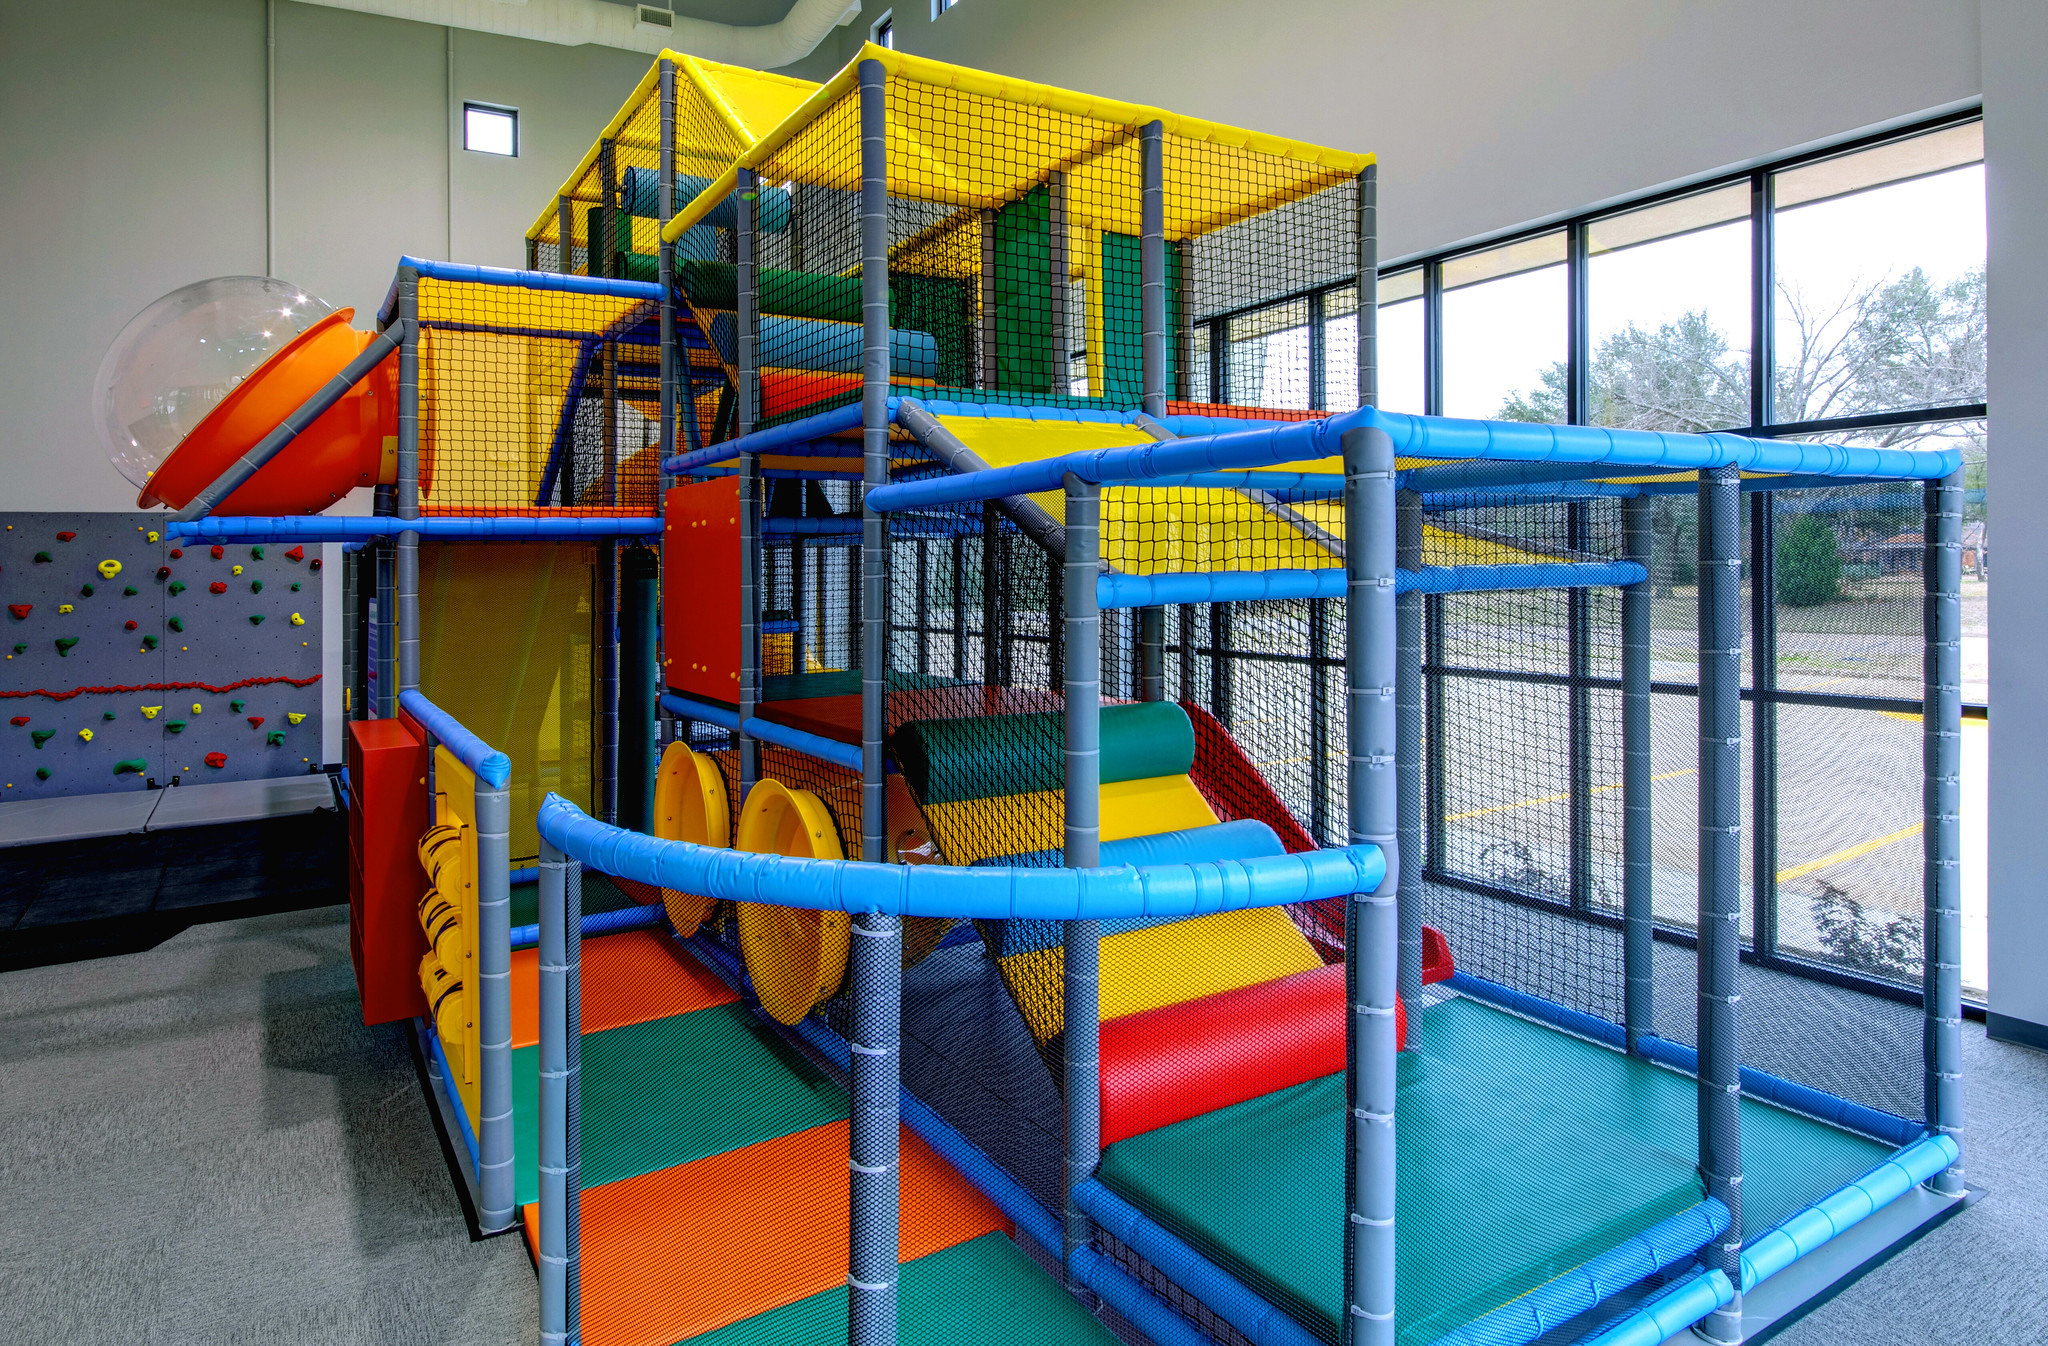 Tabernacle Baptist indoor playground